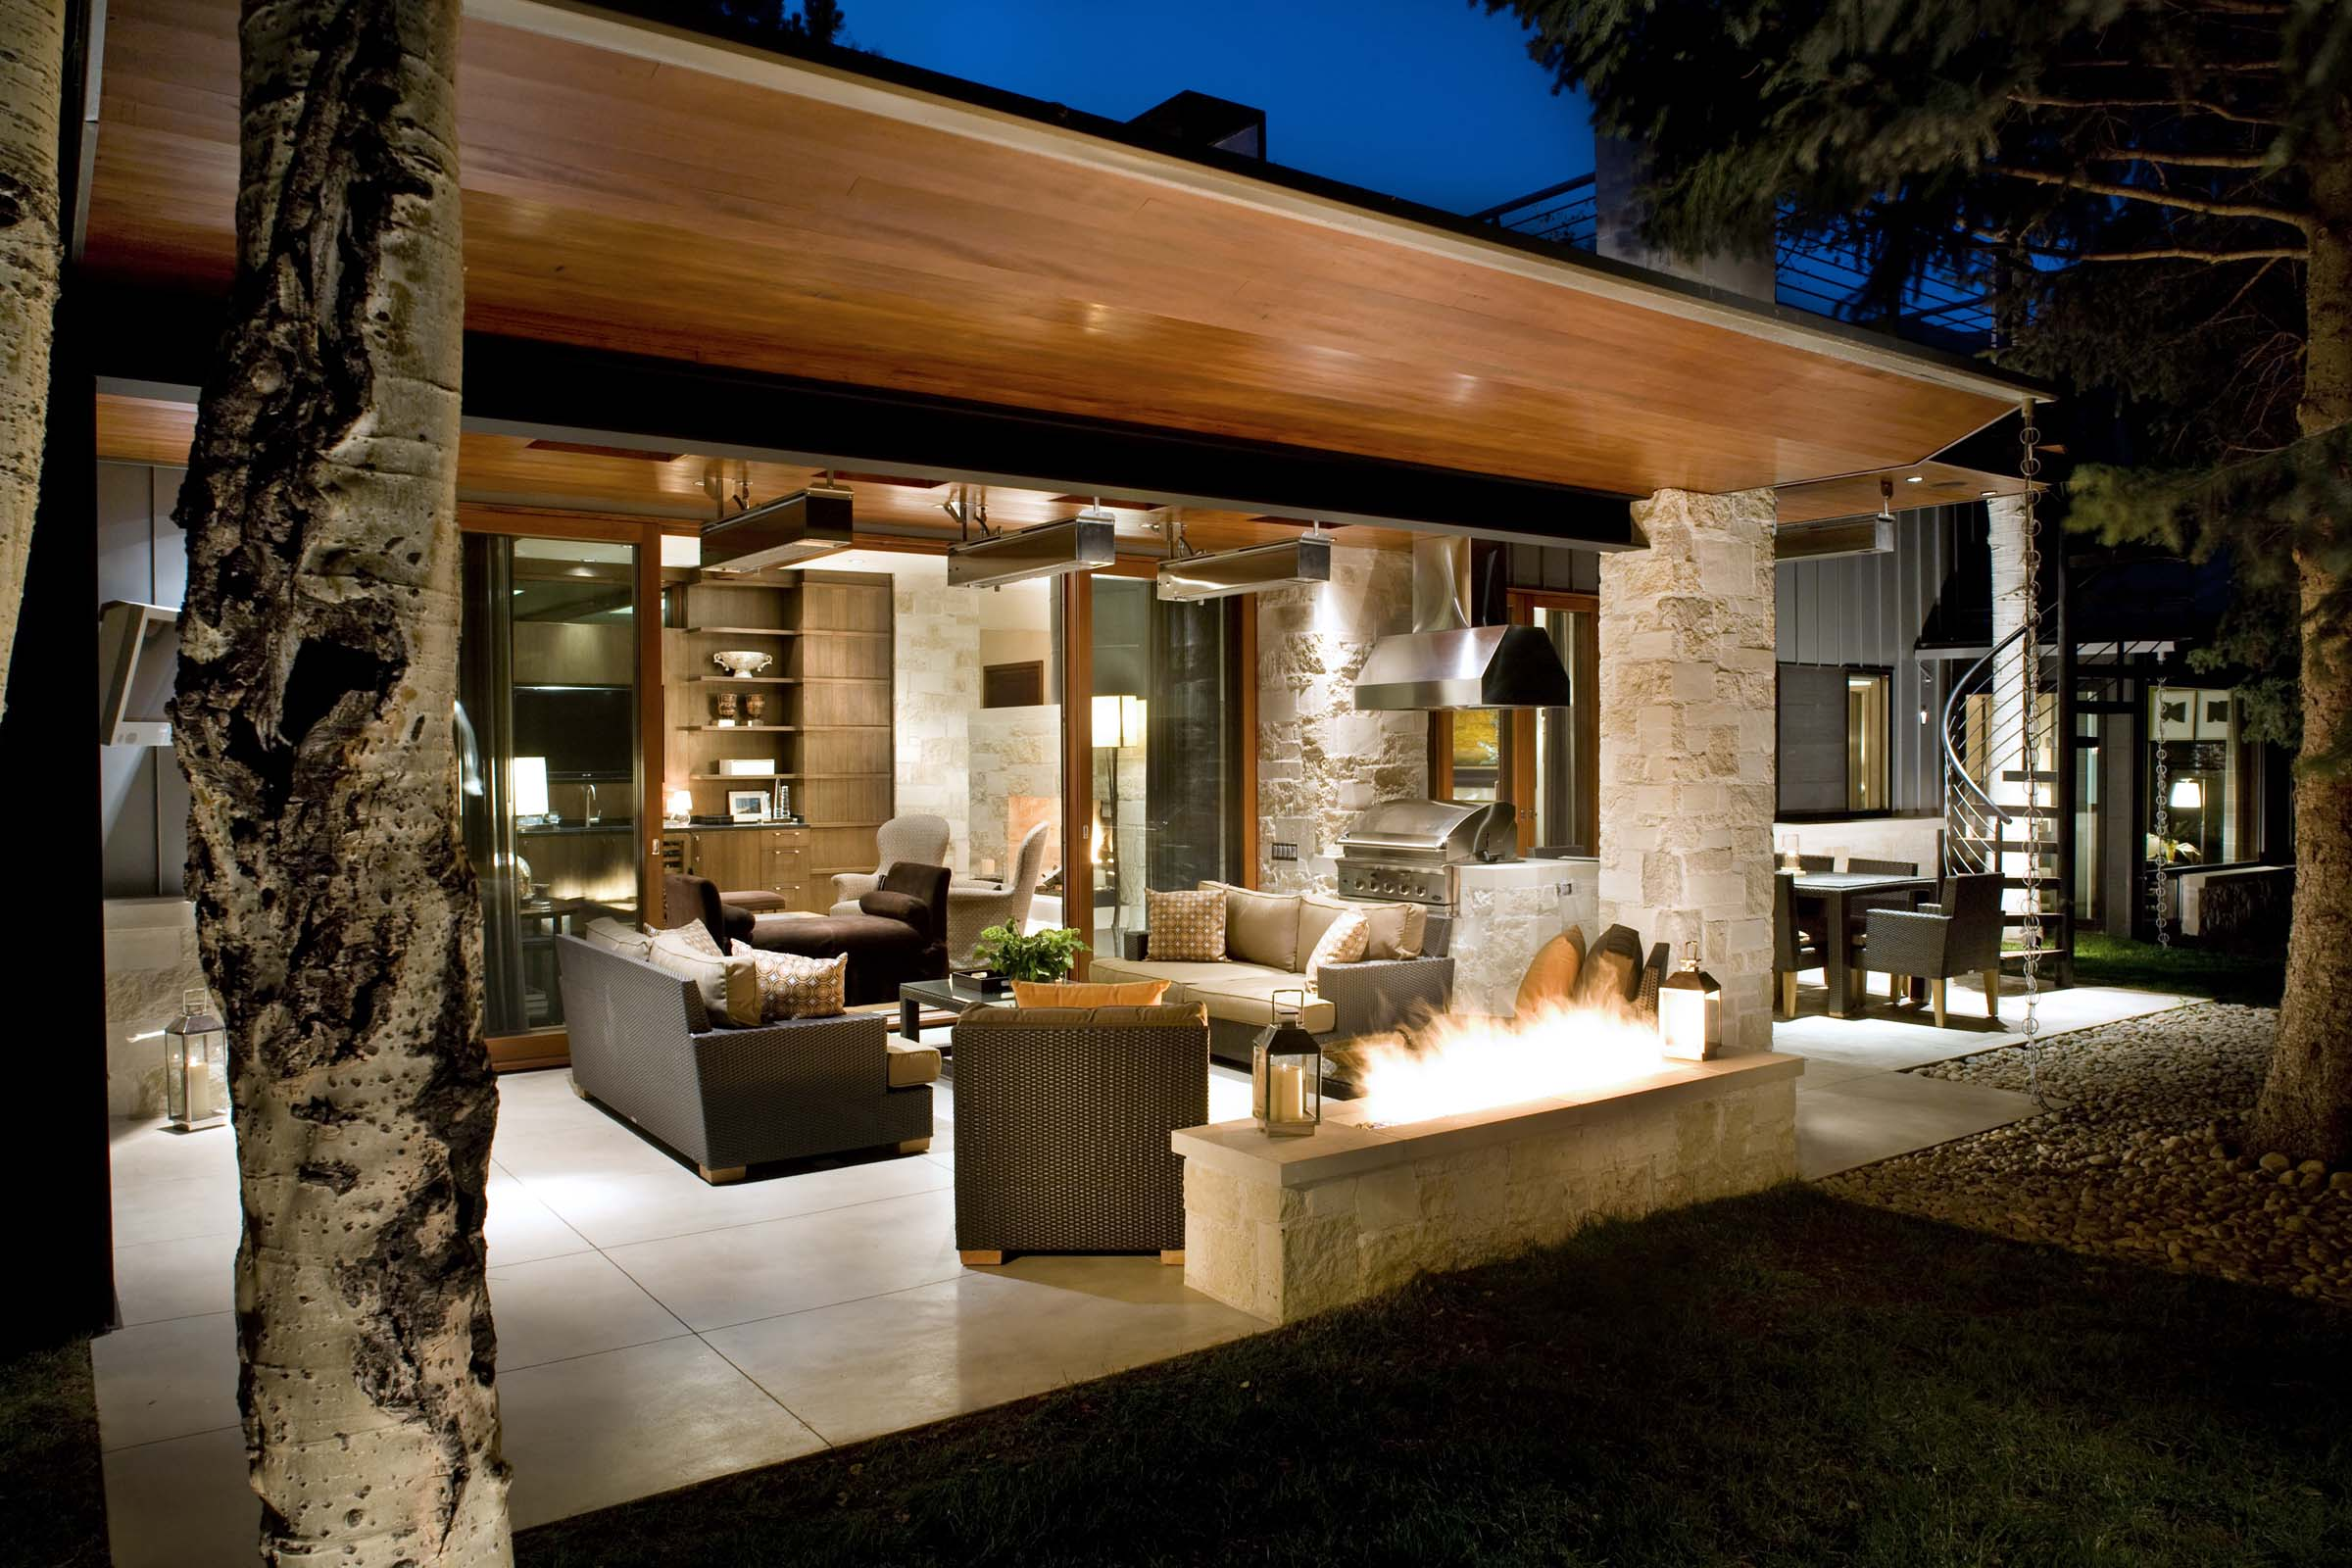 RTF Systems Outdoor Kitchen image